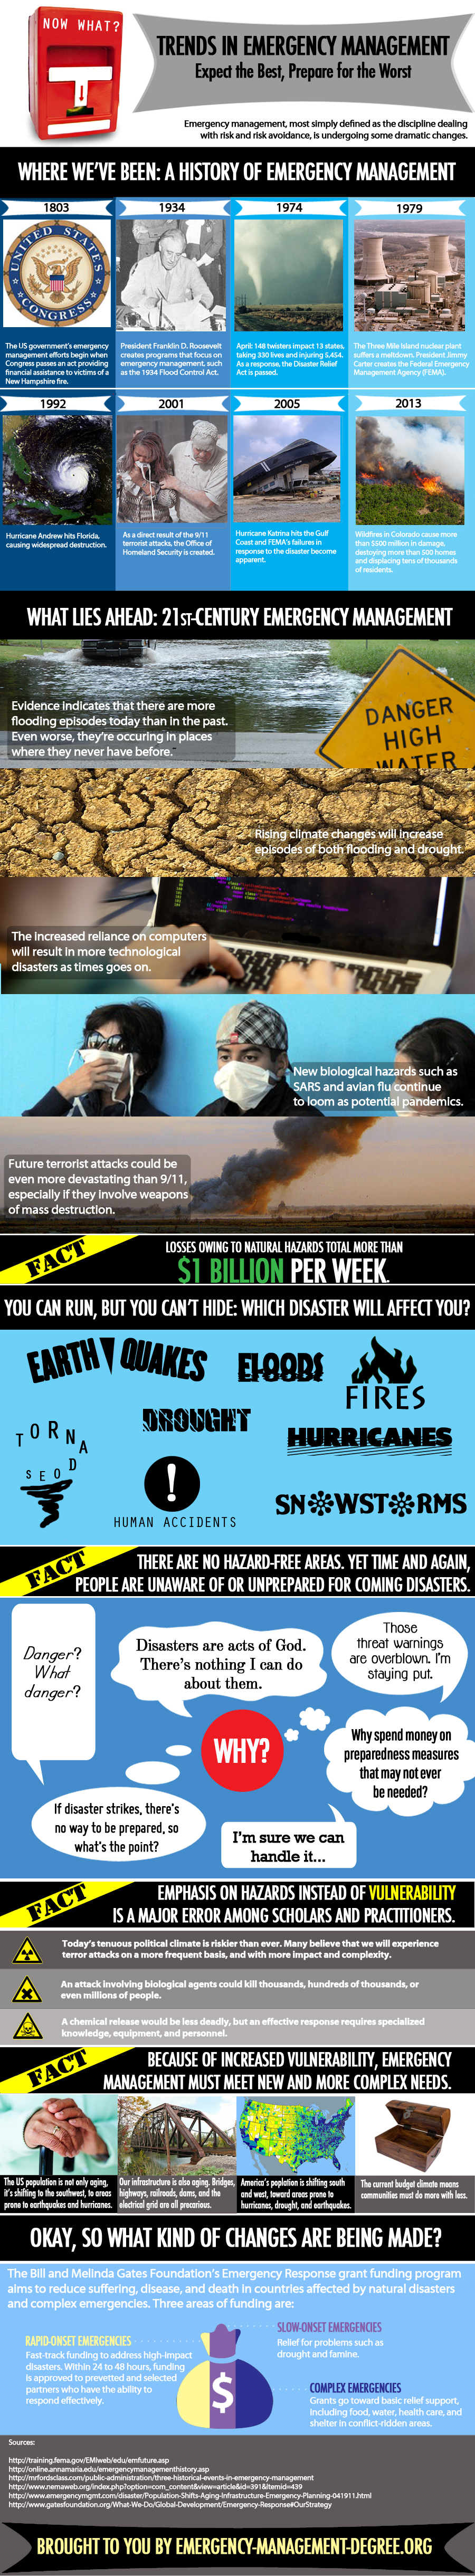 history of emergency management infographic